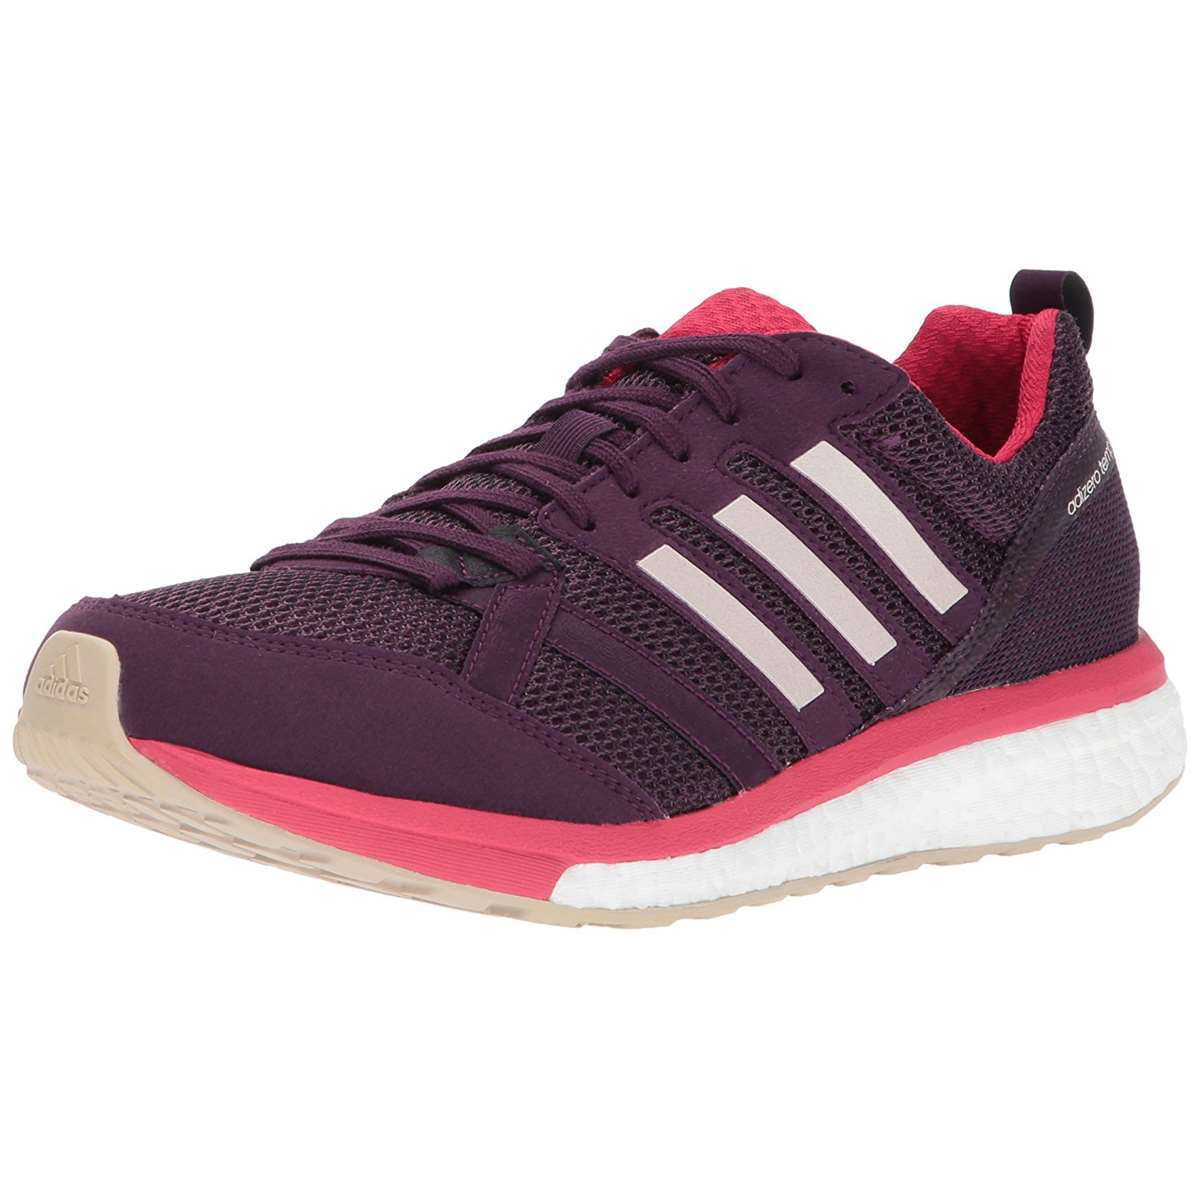 Womens ADIDAS Sneakers ADIZERO TEMPO 9 Red Night Running Shoes NEW